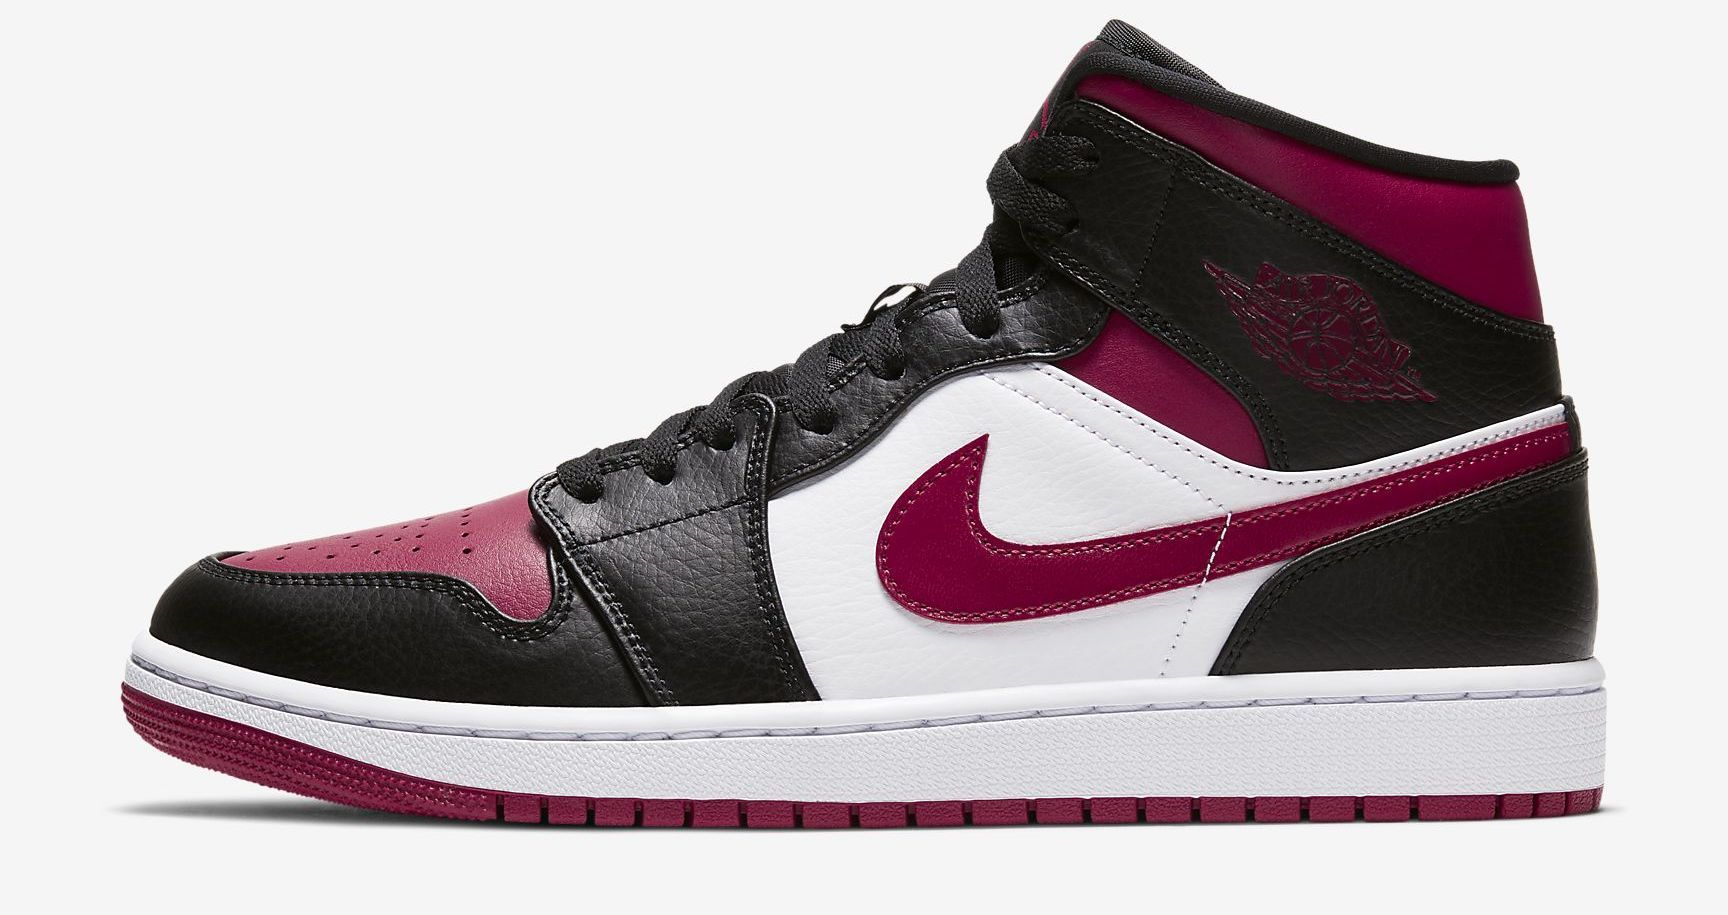 A Fashion Lover S Take On The 13 Most Iconic Sneakers Of All Time Air Jordans Retro Basketball Shoes Jordan 1 Mid